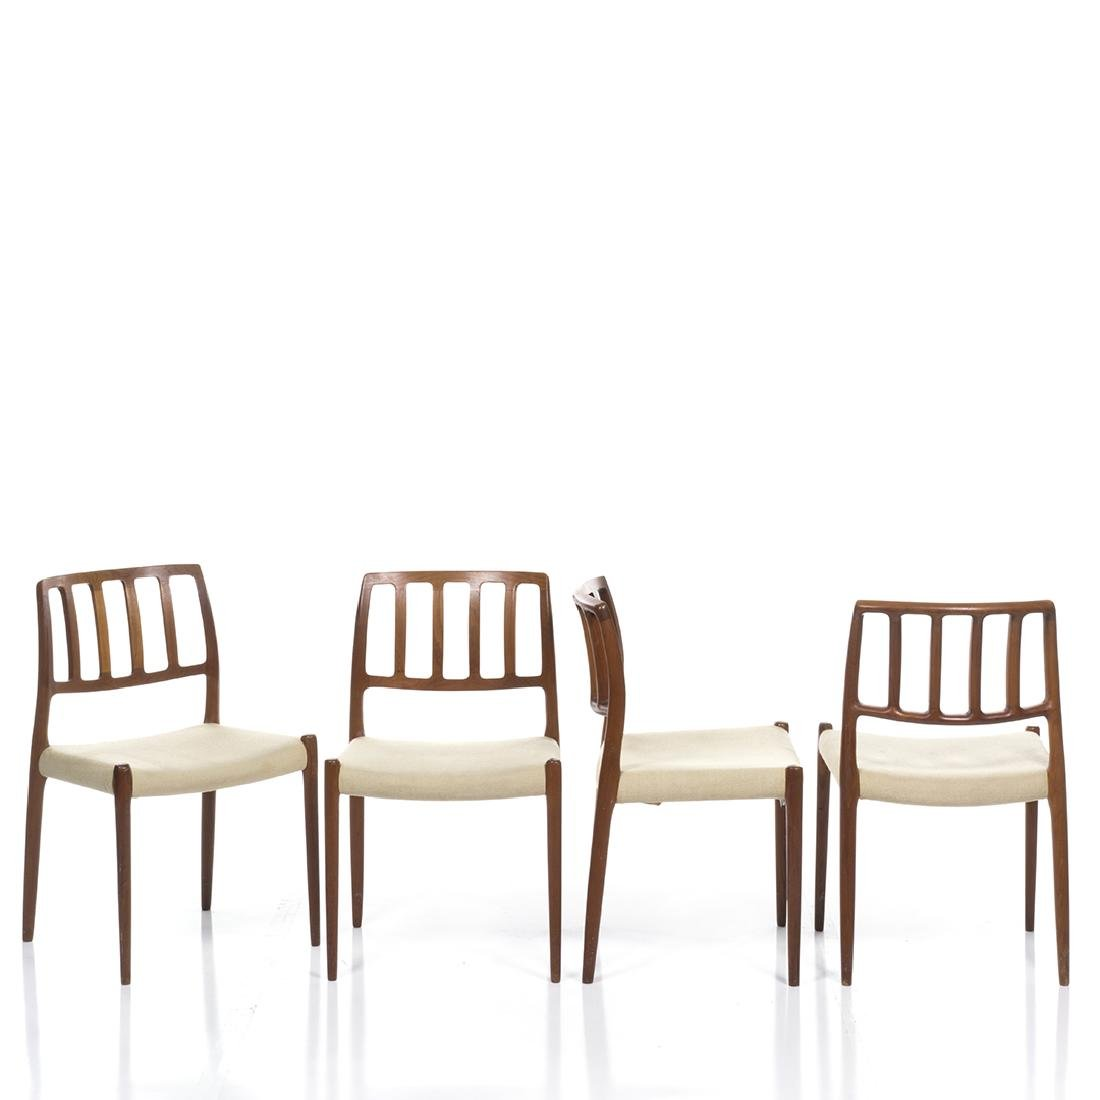 Niels Moller Dining Chairs (6) - 2